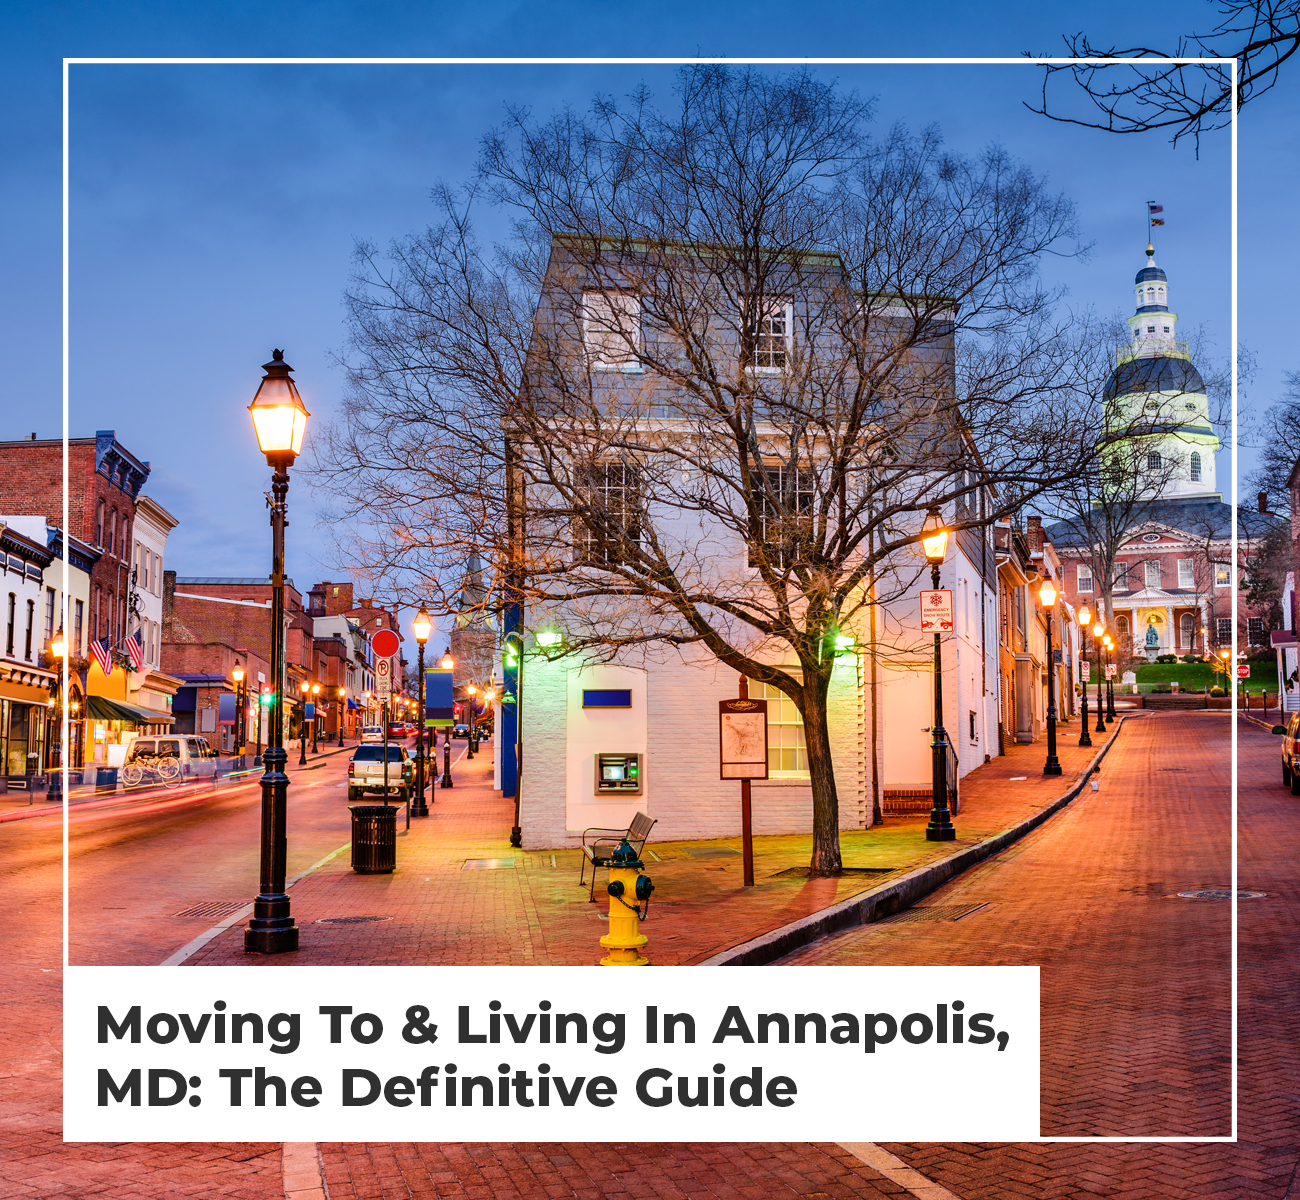 Moving To & Living In Annapolis, MD: The Definitive Guide